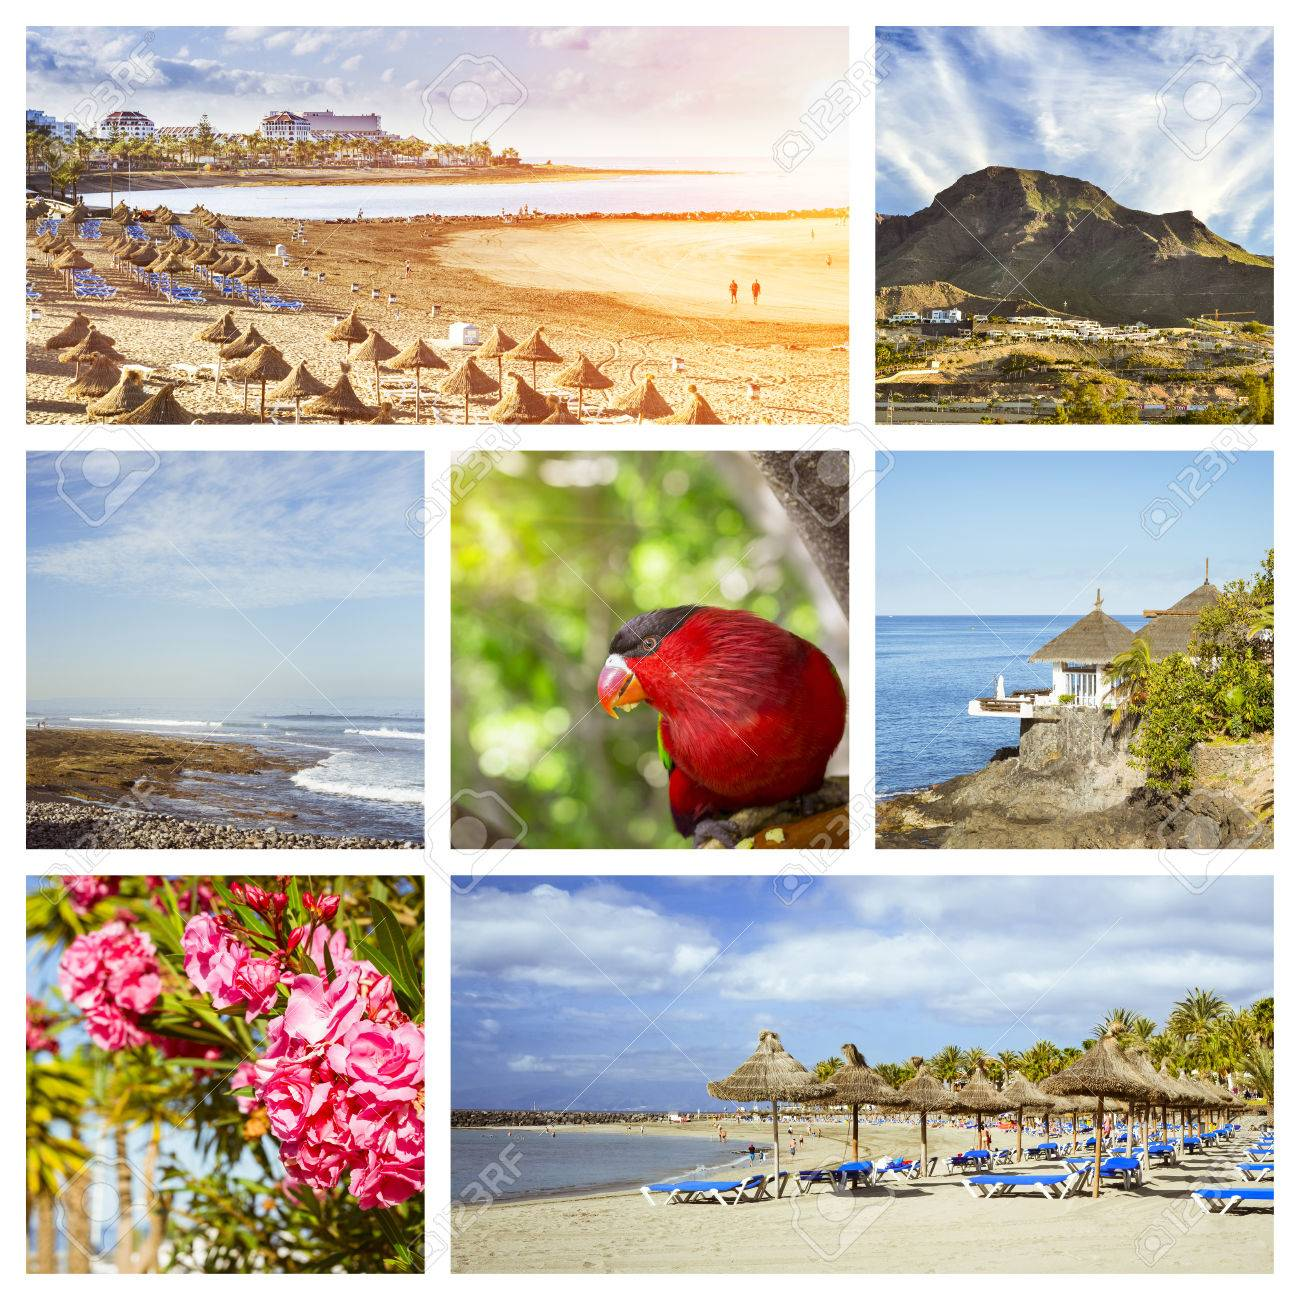 Sunny summer beach travel vacation  Collage with popular types